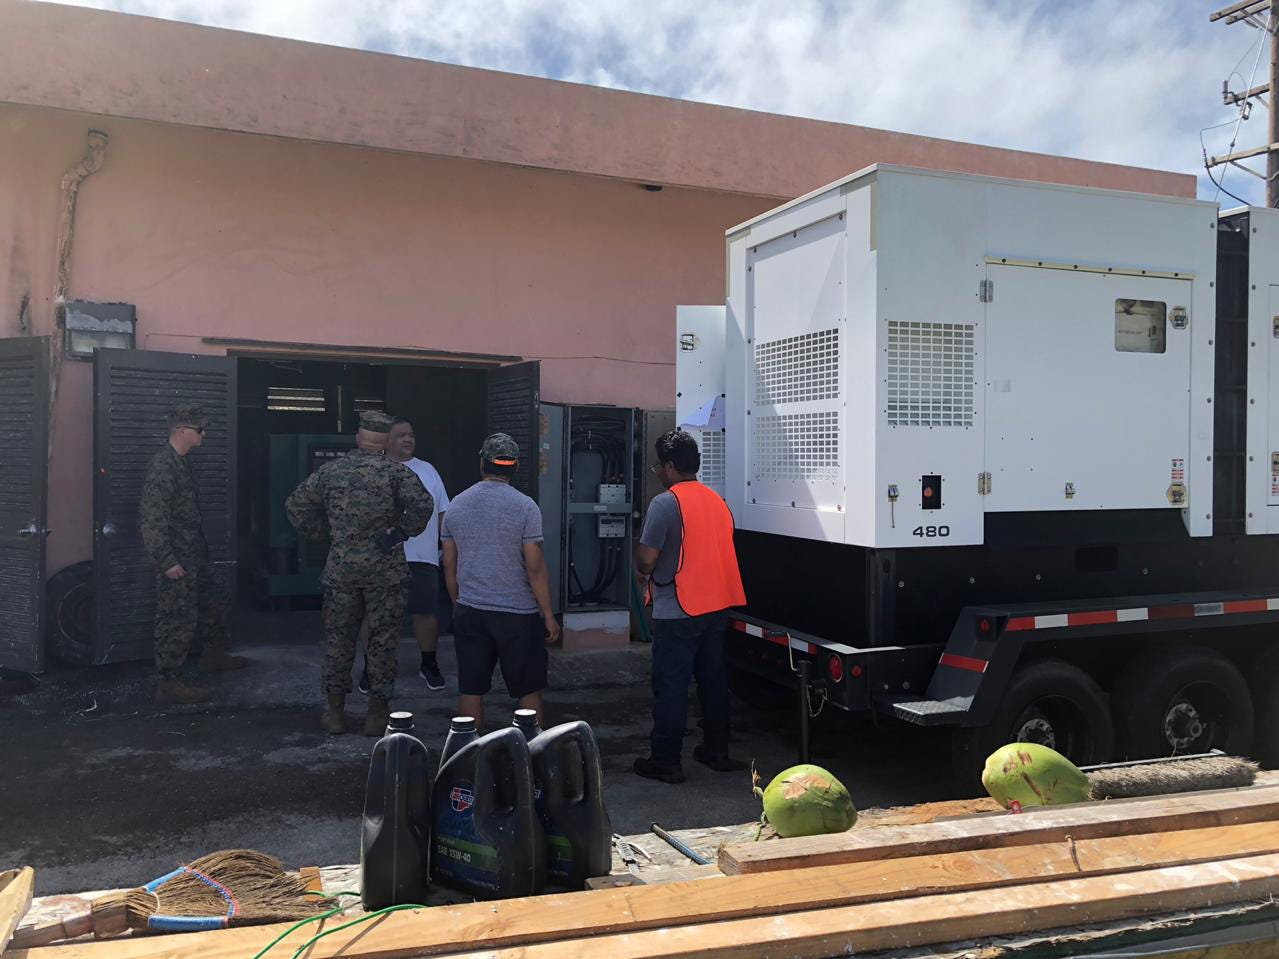 TINIAN, Commonwealth of the Northern Mariana Islands (Oct. 28, 2018) — U.S. Army Corps of Engineers, U.S. Air Force and U.S. Marine Corps personnel deliver a generator the water pumping station in Tinian Oct. 28. Personnel worked with local authorities reestablish capabilities and provide clean drinking water to the local community. Service members from Joint Region Marianas and Indo-Pacific Command are providing Department of Defense support to the CNMI's civil and local officials as part of the FEMA-supported Super Typhoon Yutu recovery effort.